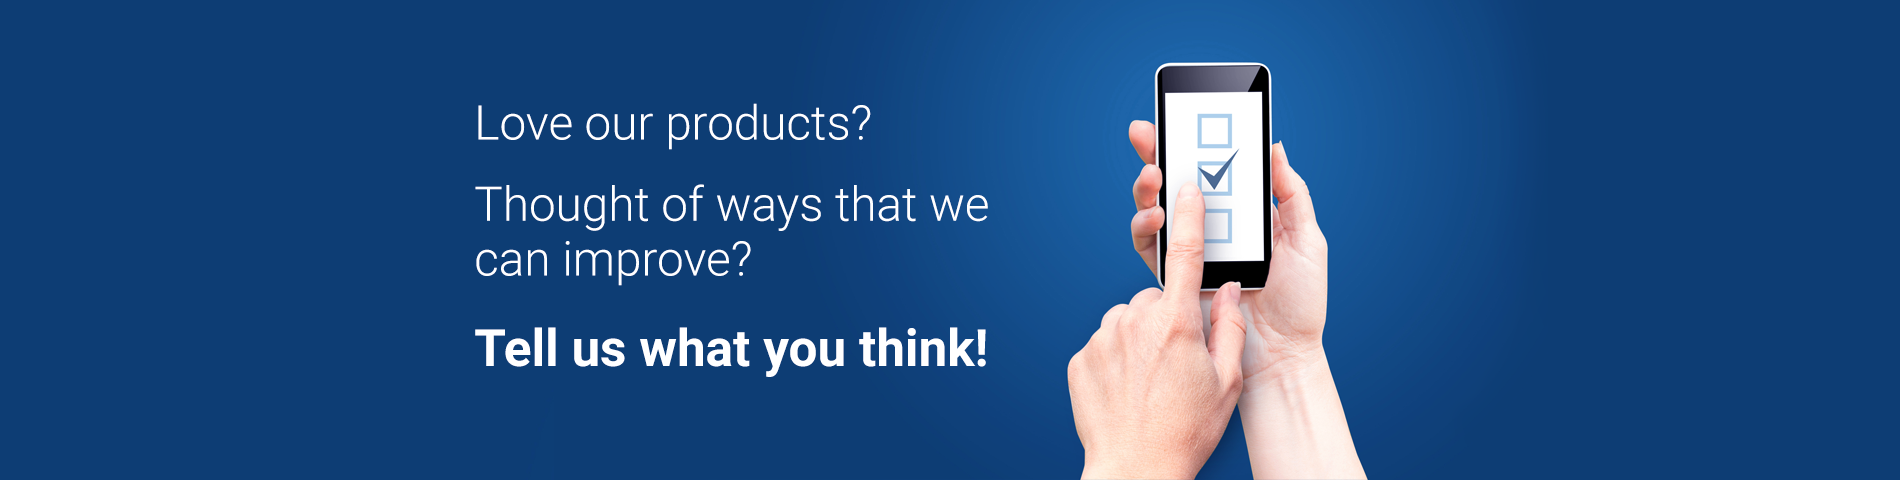 Love our products? Thought of ways that we can improve? Tell us what you think!